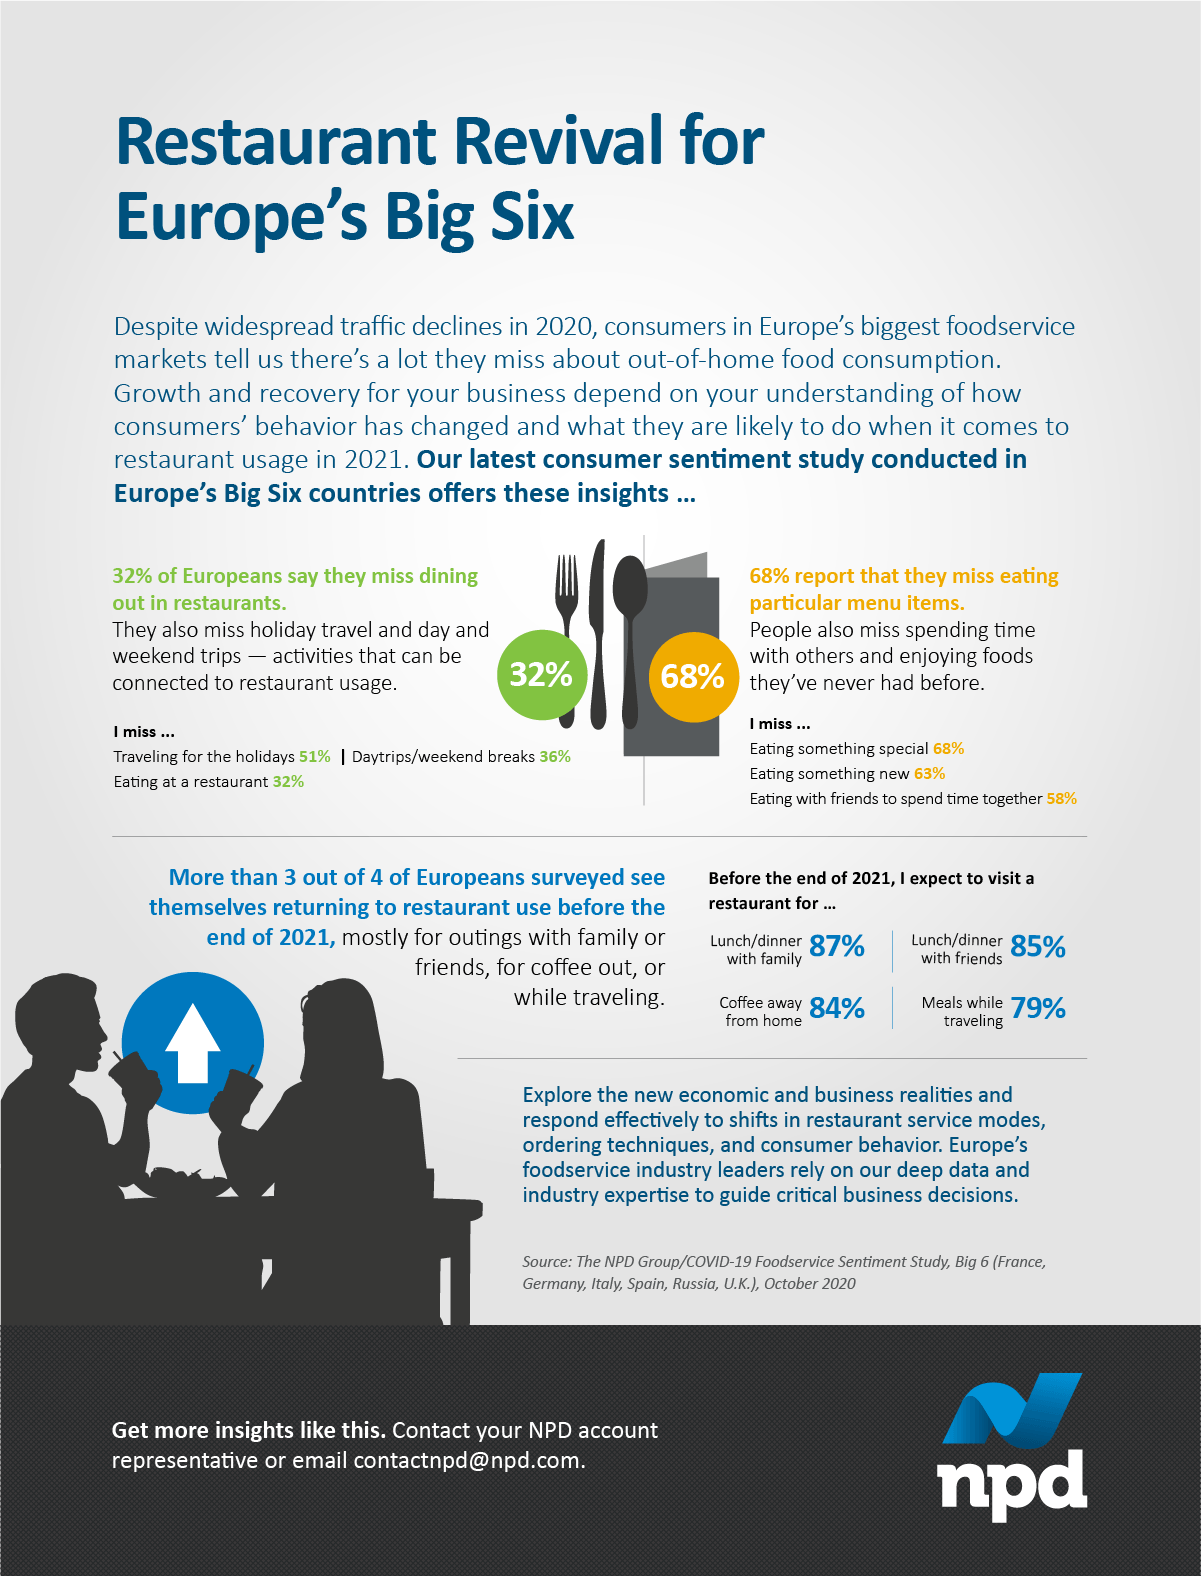 Despite widespread traffic declines in 2020, consumers in Europe's biggest foodservice markets tell us there's a lot they miss about out-of-home food consumption.